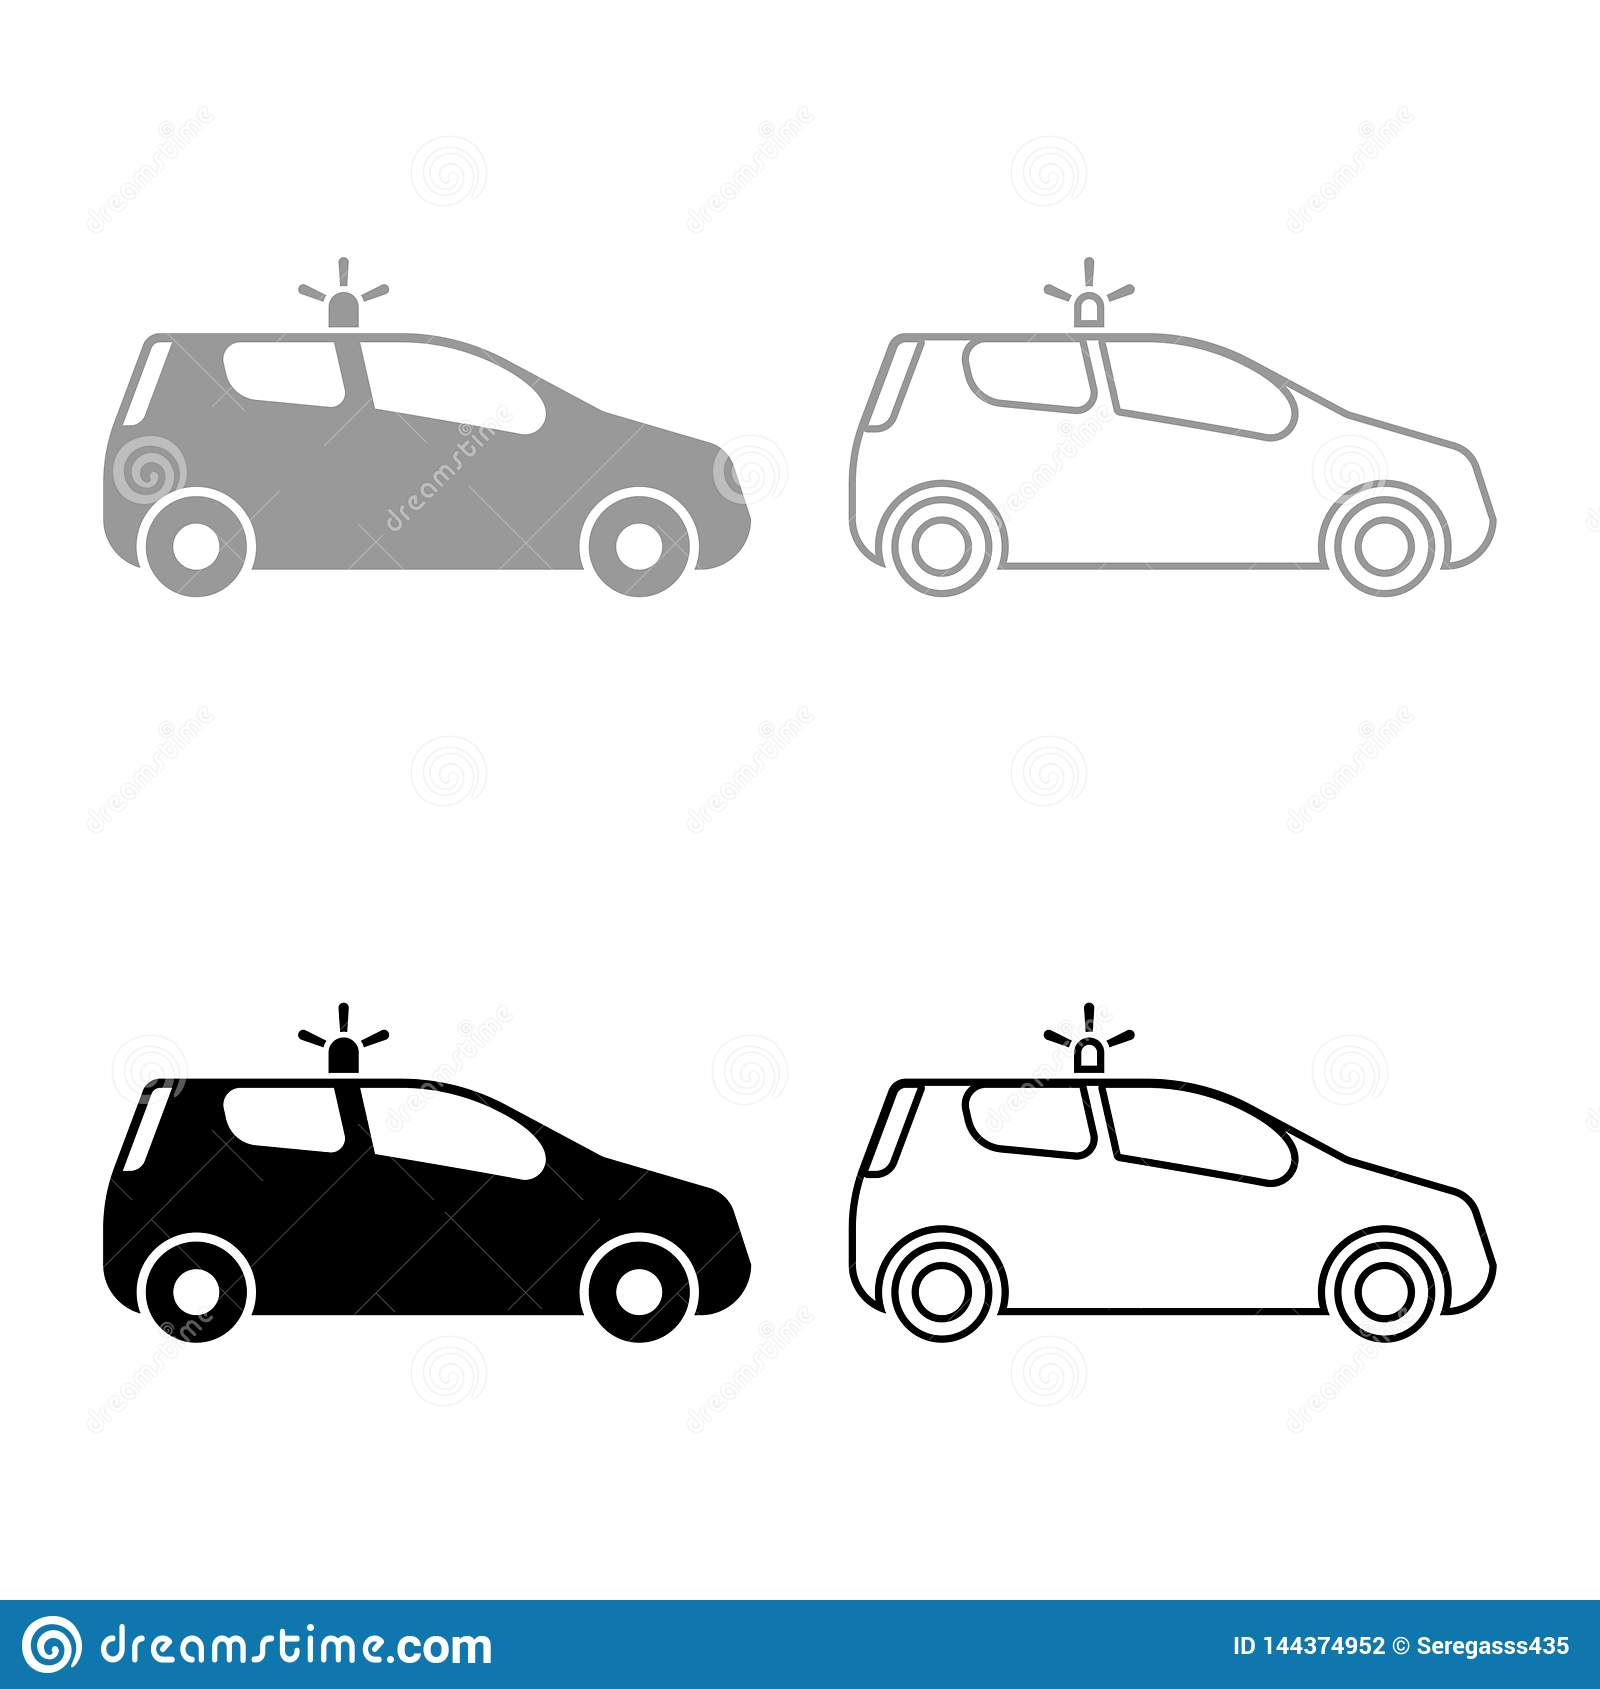 Security car Police car Car with siren icon set black color vector illustration flat style image